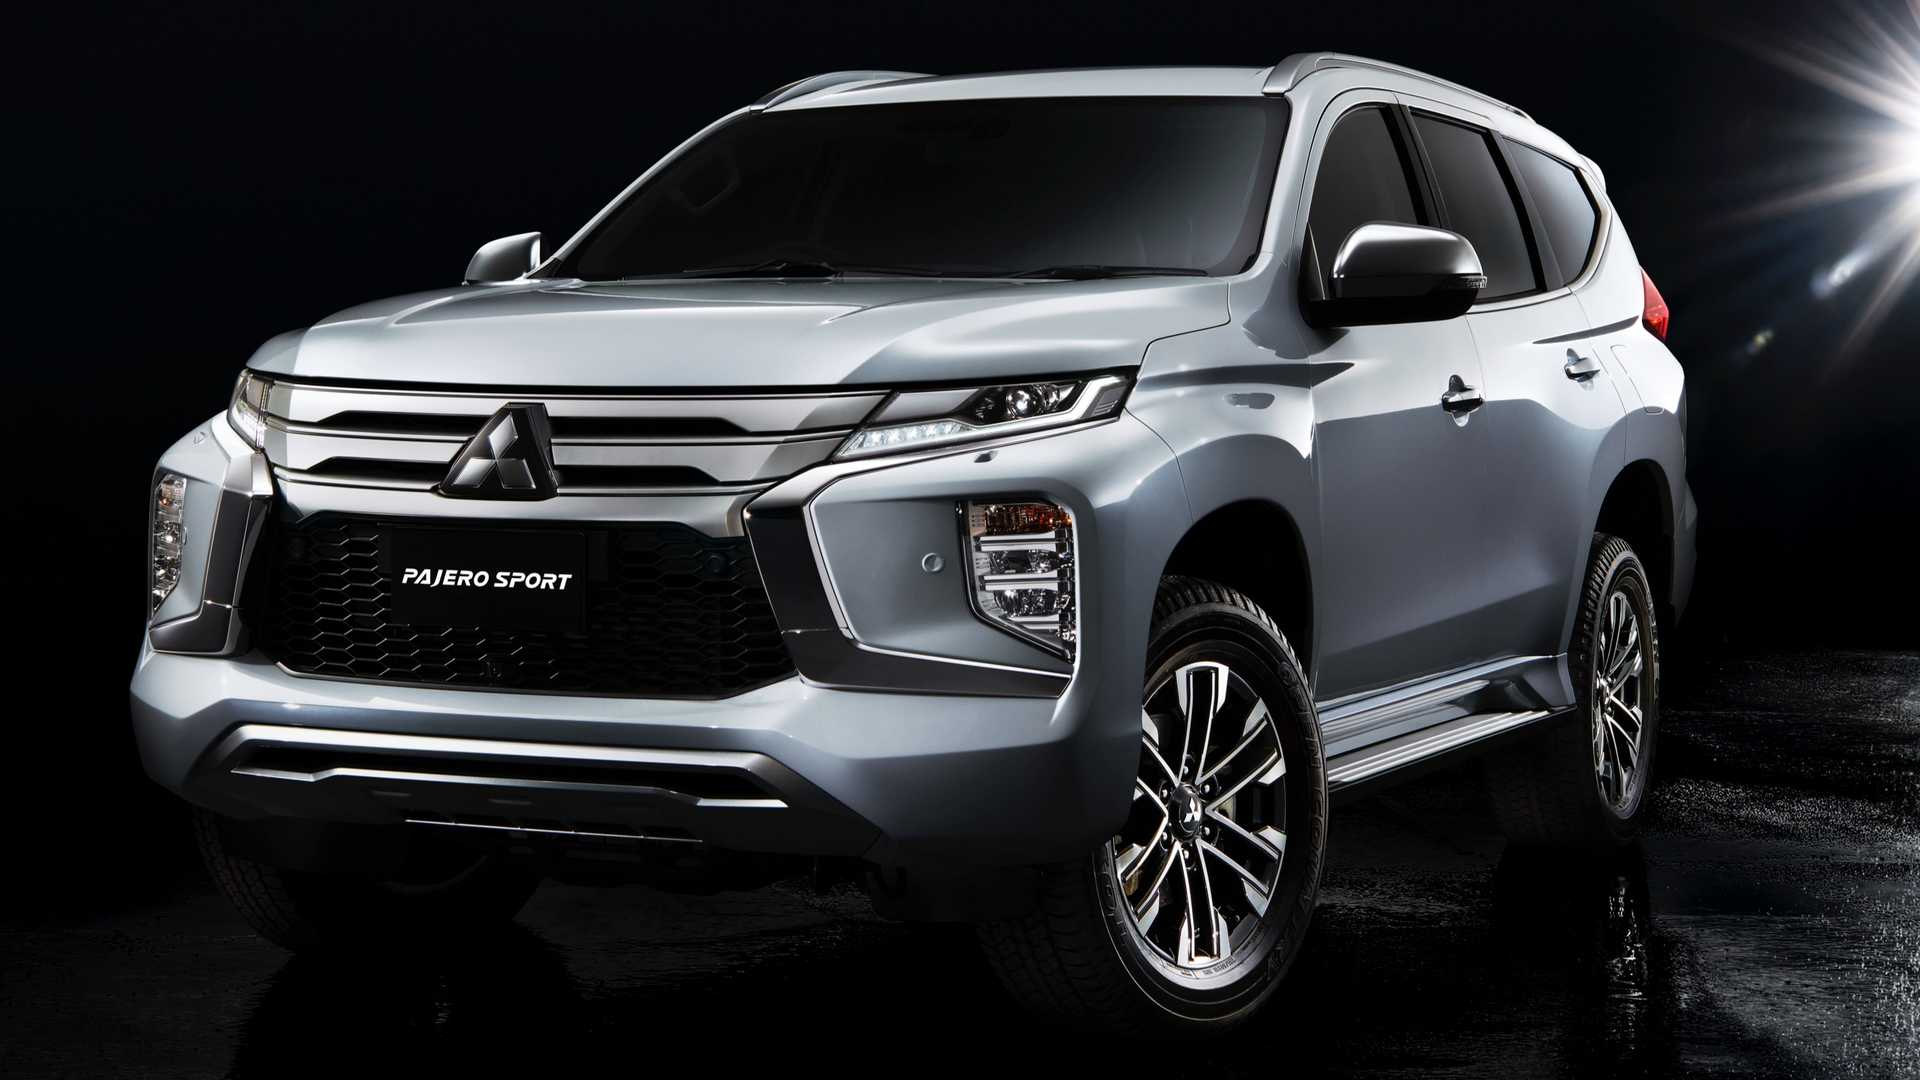 88 The Best Mitsubishi Shogun Sport 2020 Exterior